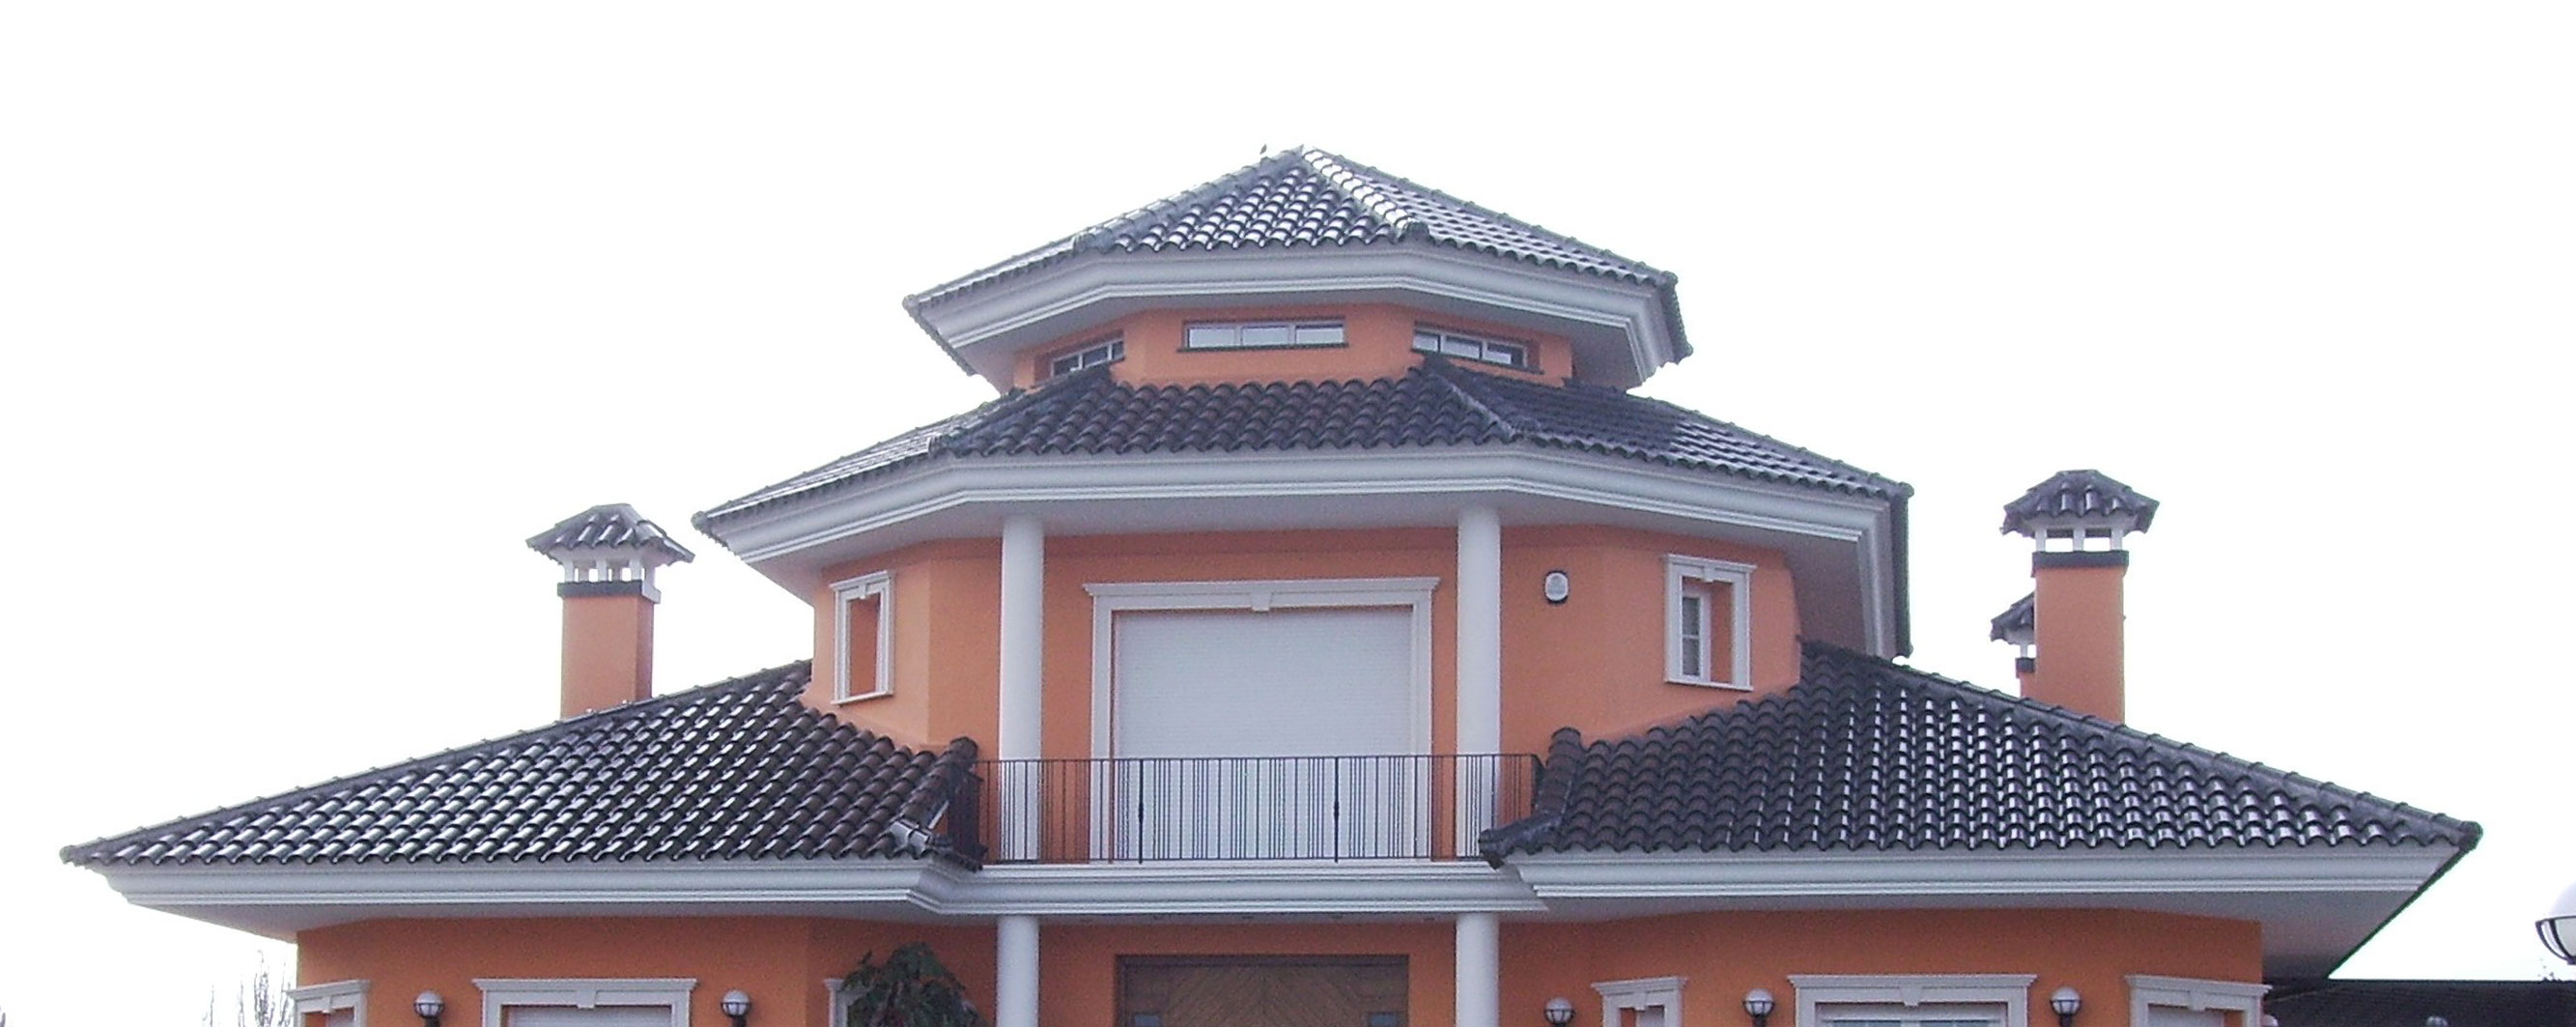 4 Pak Clay Industry Khaprail Roof Tiles Manufacturers and Suppliers Islamabad